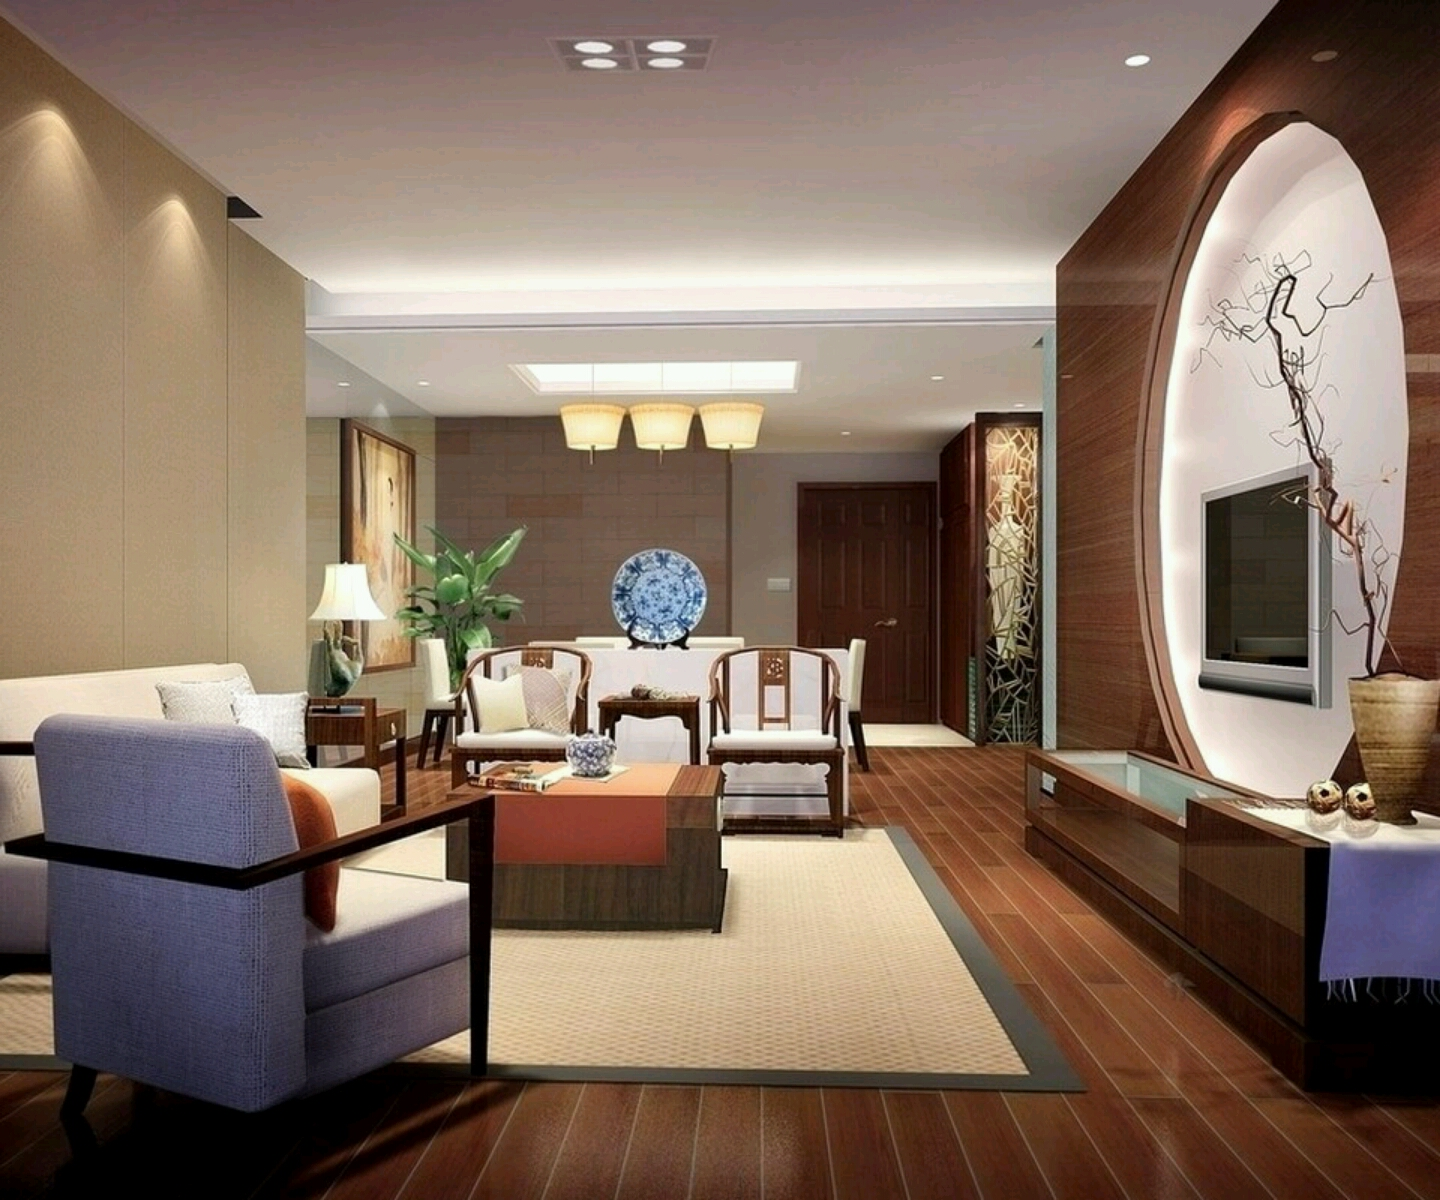 Luxury homes interior decoration living room designs ideas Design ideas for living room